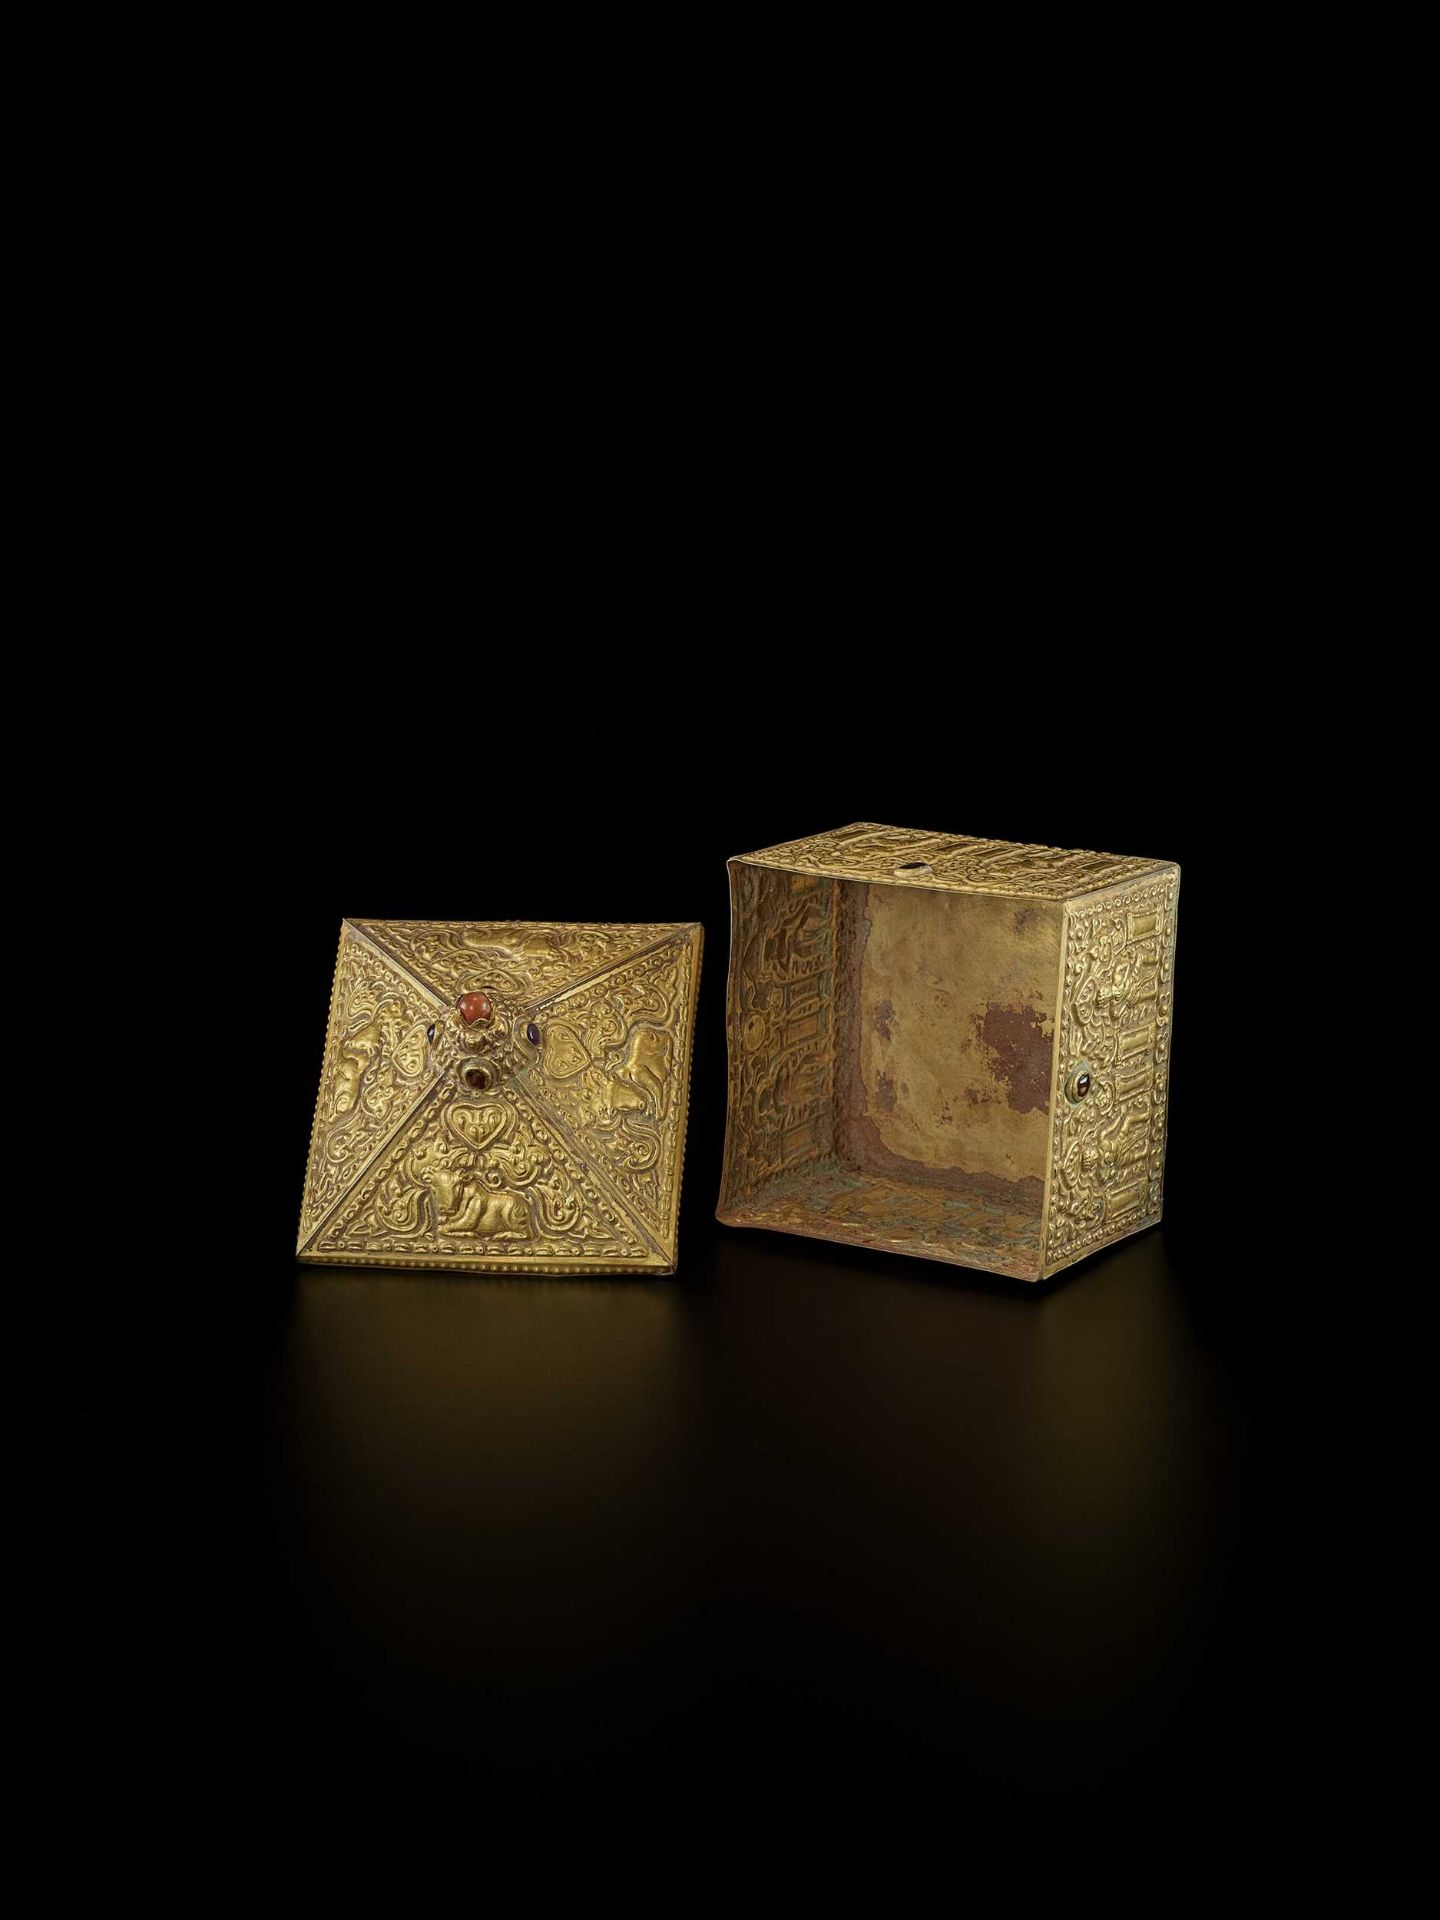 A FINE AND EXTREMELY RARE GEMSTONE-SET CHAM GOLD REPOUSSÉ BOX AND COVER - Bild 7 aus 10